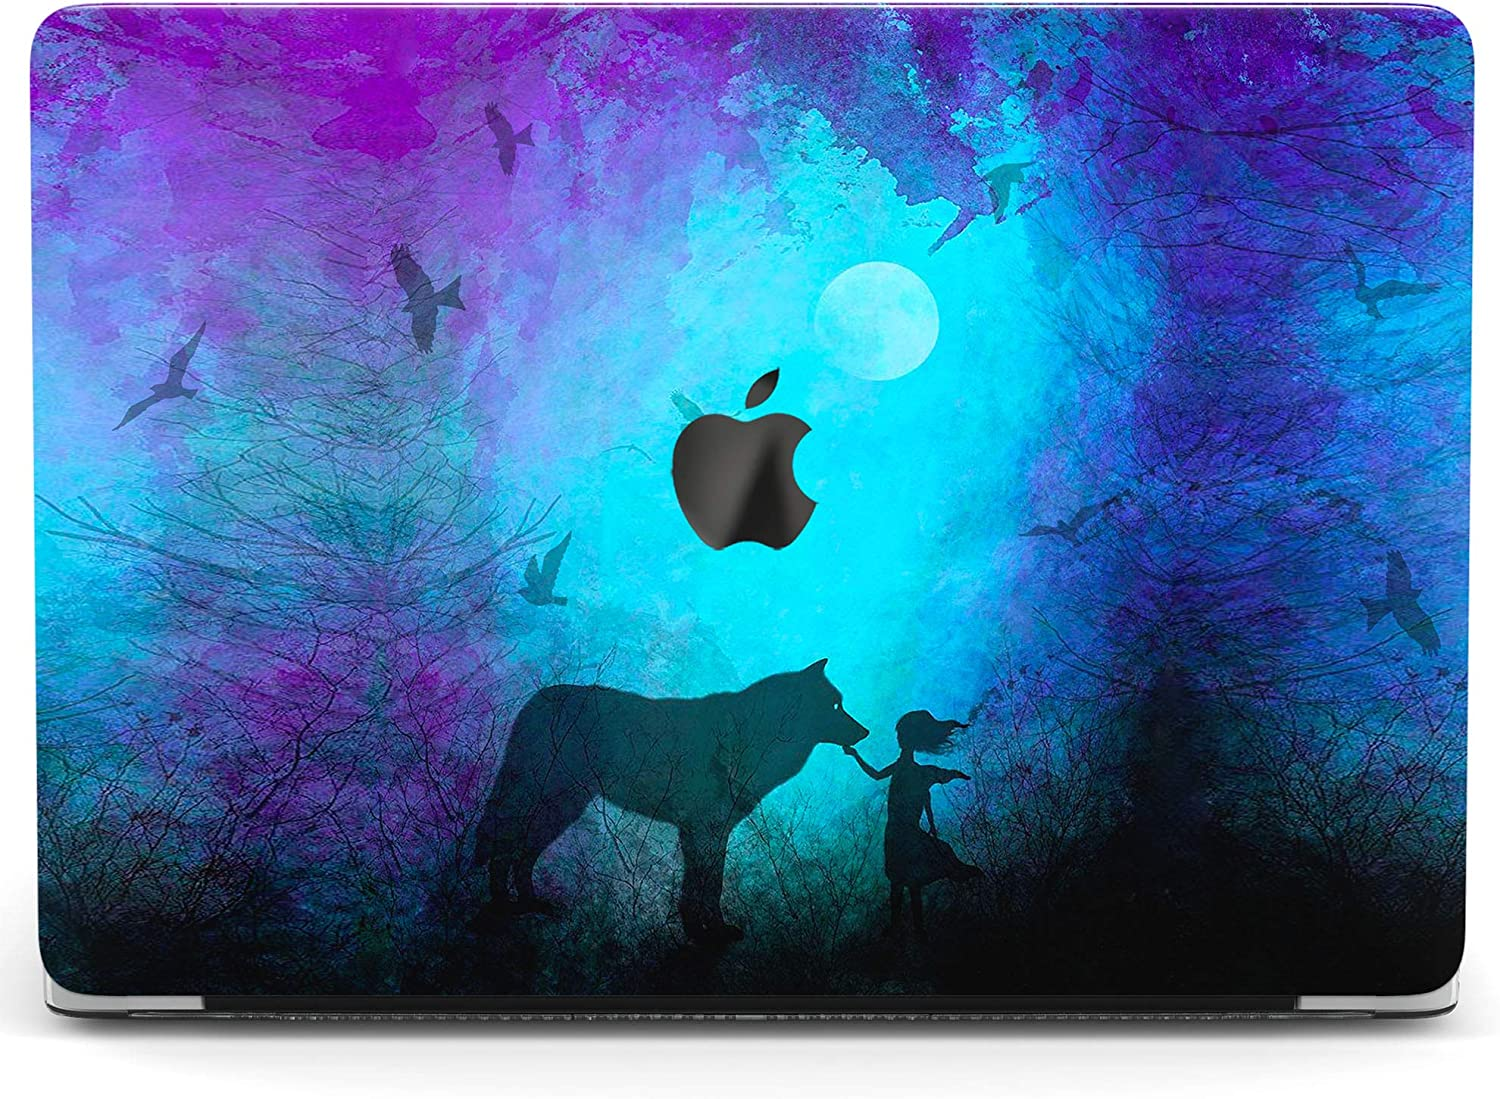 Wonder Wild Case for MacBook Air 13 inch Pro 15 2019 2018 Retina 12 11 Apple Hard Mac Protective Cover Touch Bar 2017 2016 2020 Plastic Laptop Print Girl Wolf Blue Watercolor Animal Cute Painted Art